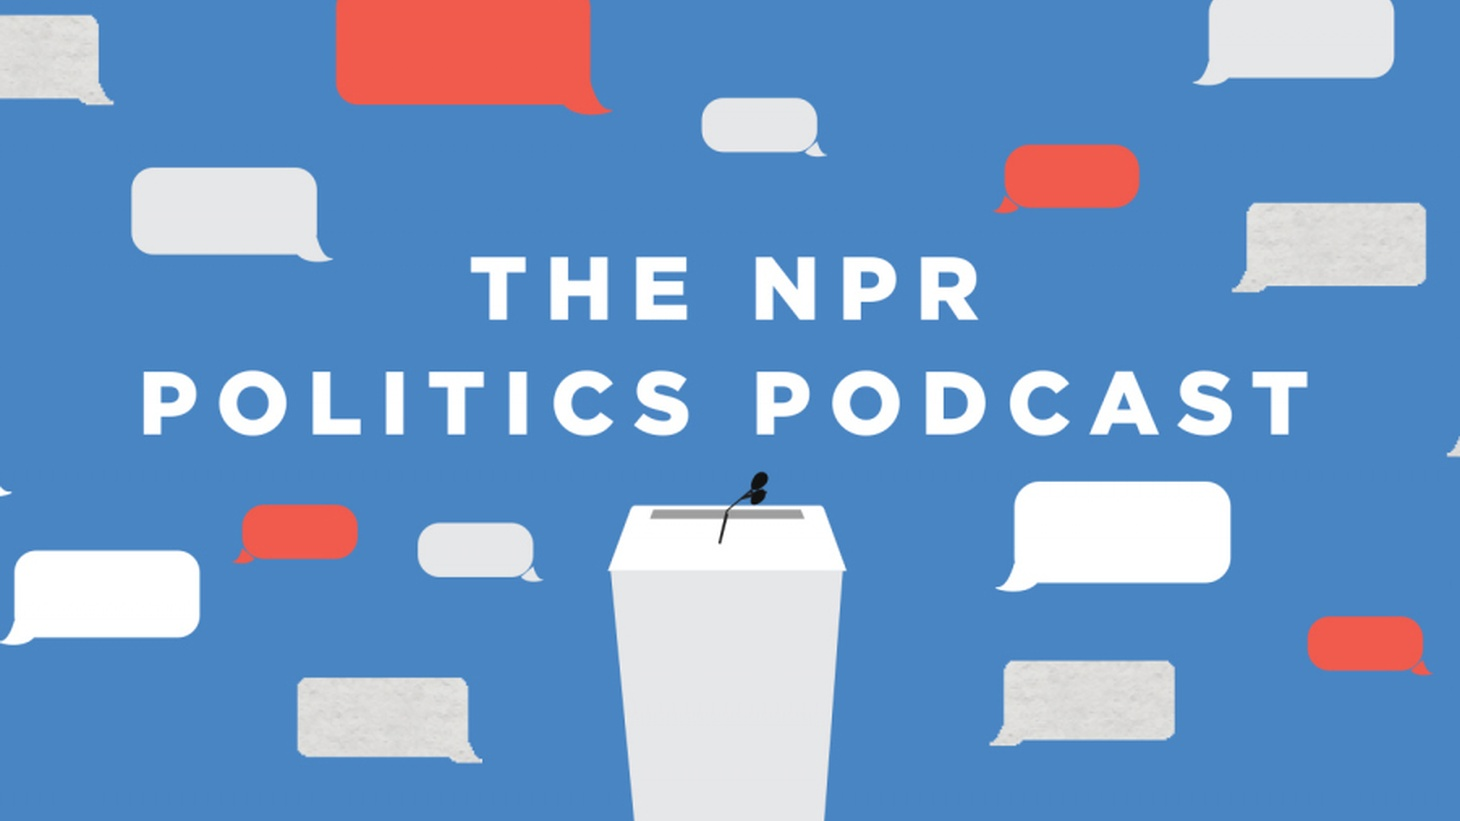 Following President Barack Obama's farewell address and President-elect Donald Trump's first press conference, the NPR Politics Team presents a one-hour special wrapping up the latest political news. Wednesday, January 11, at 7pm Pacific Time.